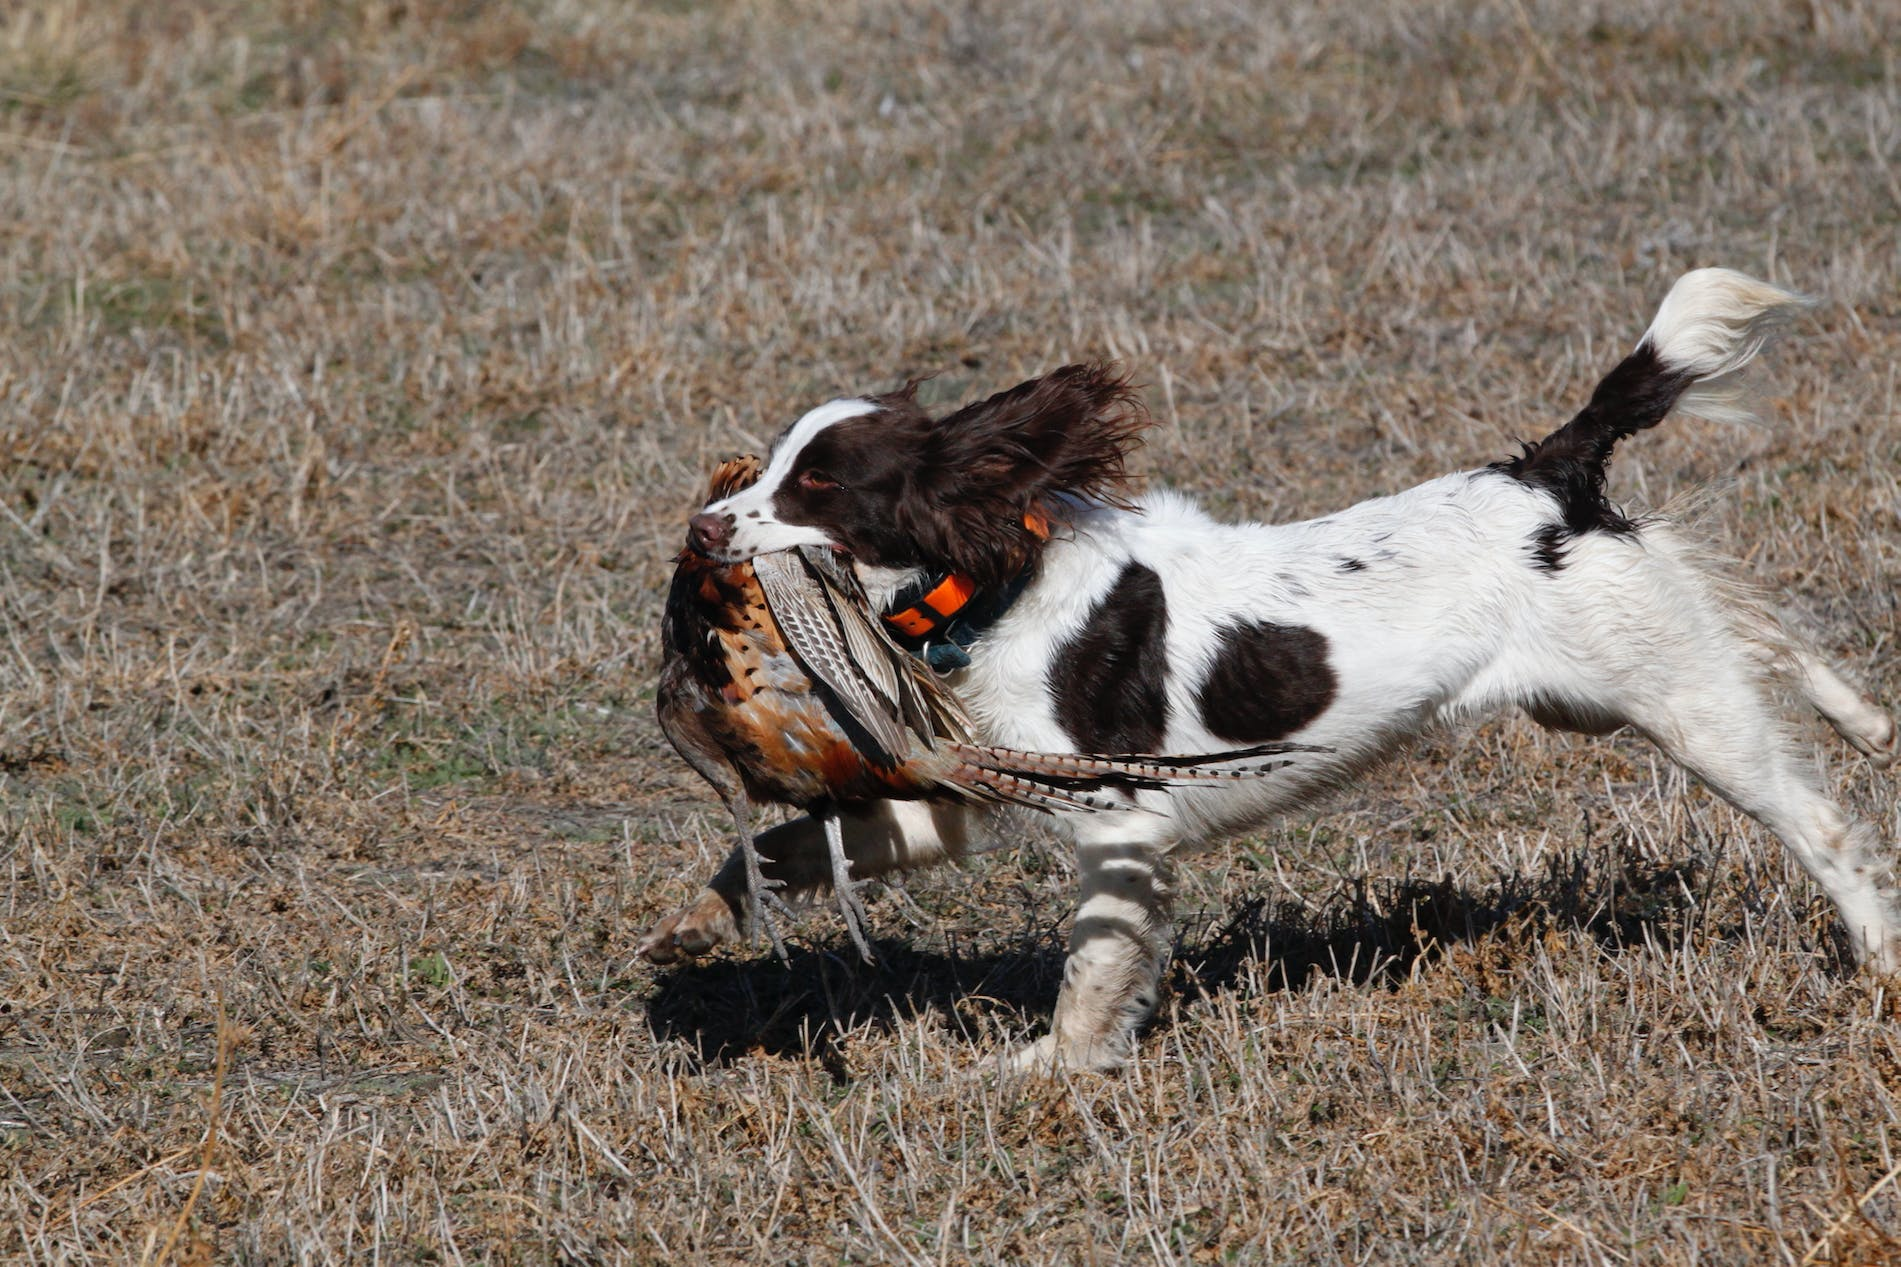 Filson Life - Bird Dog Training